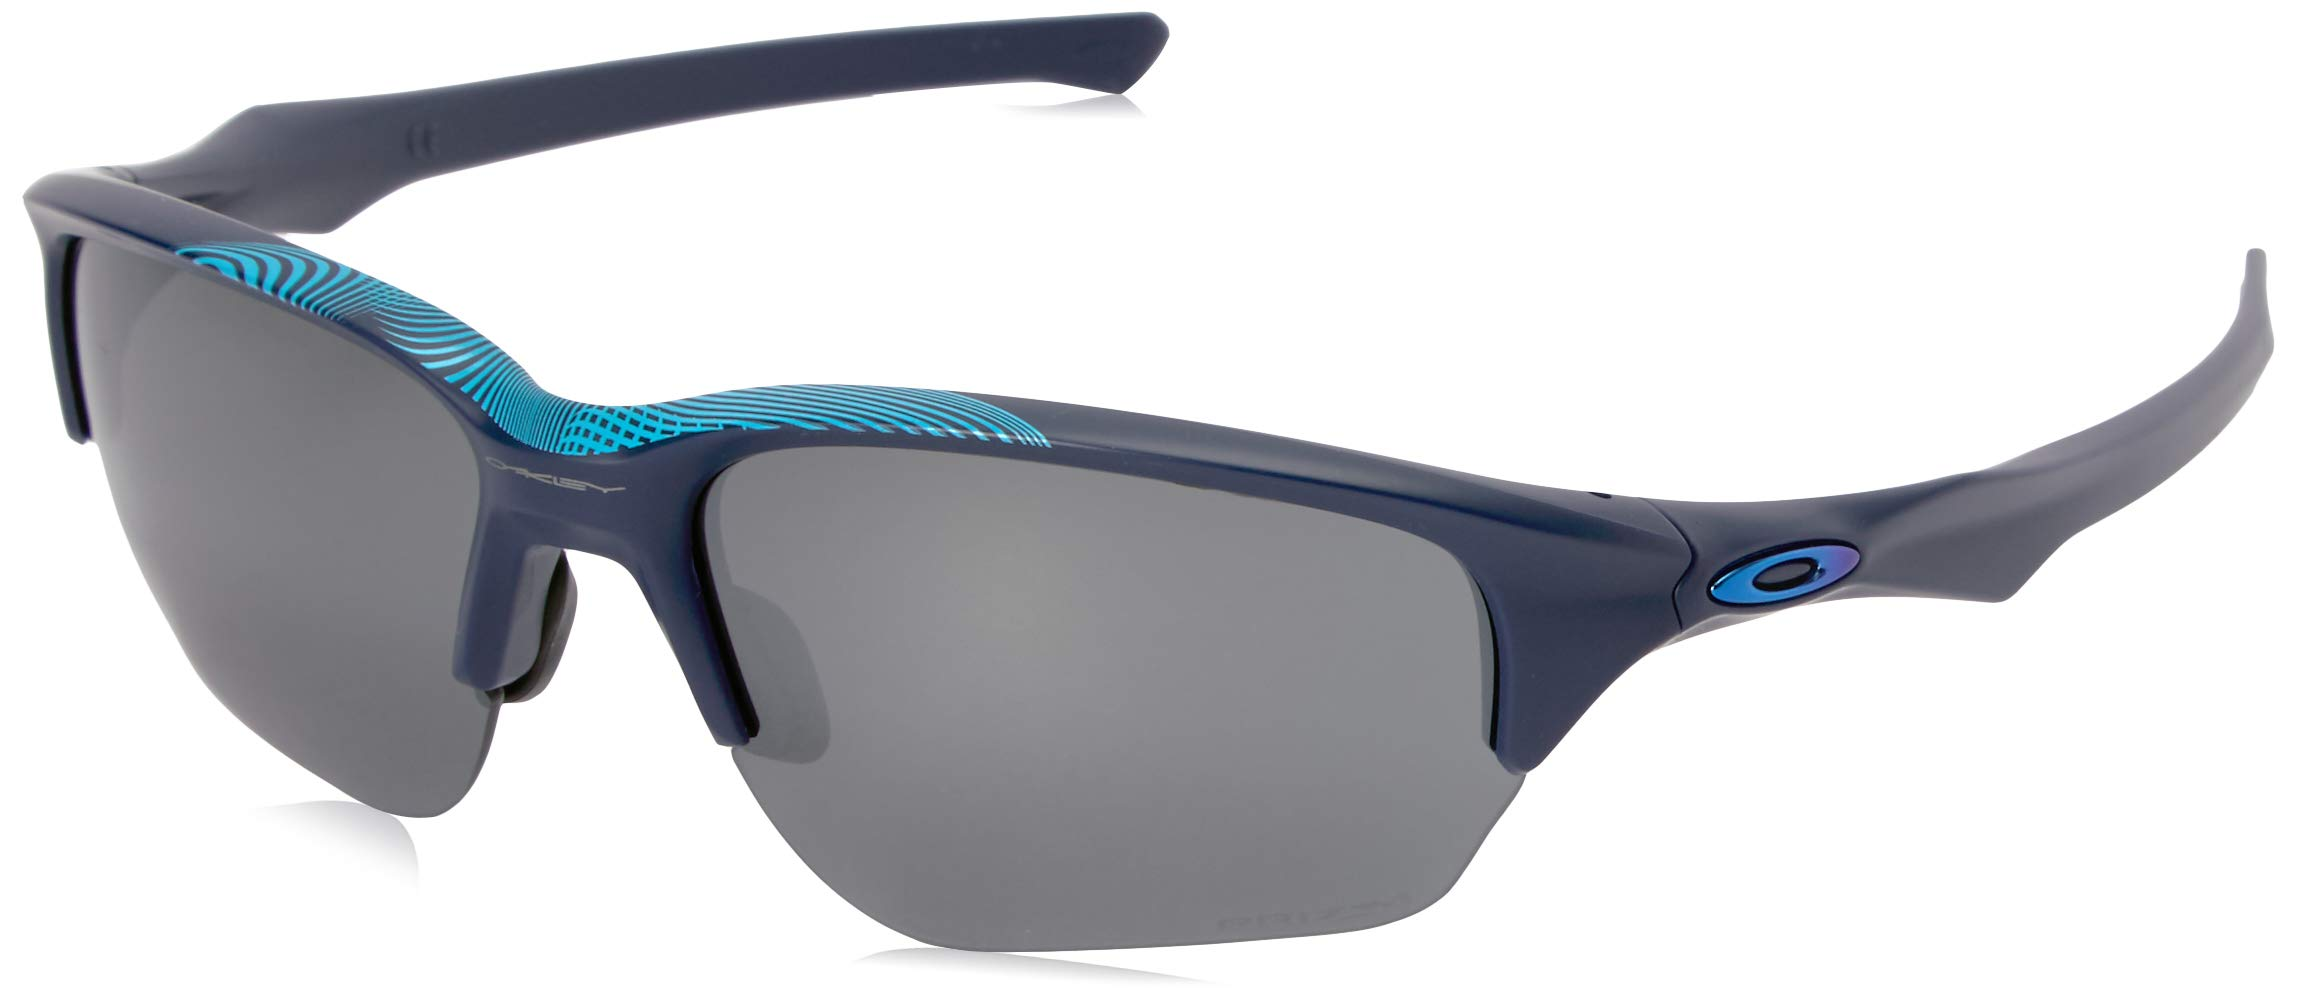 Oakley Men's Flak Beta Non-Polarized Iridium Rectangular Sunglasses, Areo Matte Navy, 64.0 mm